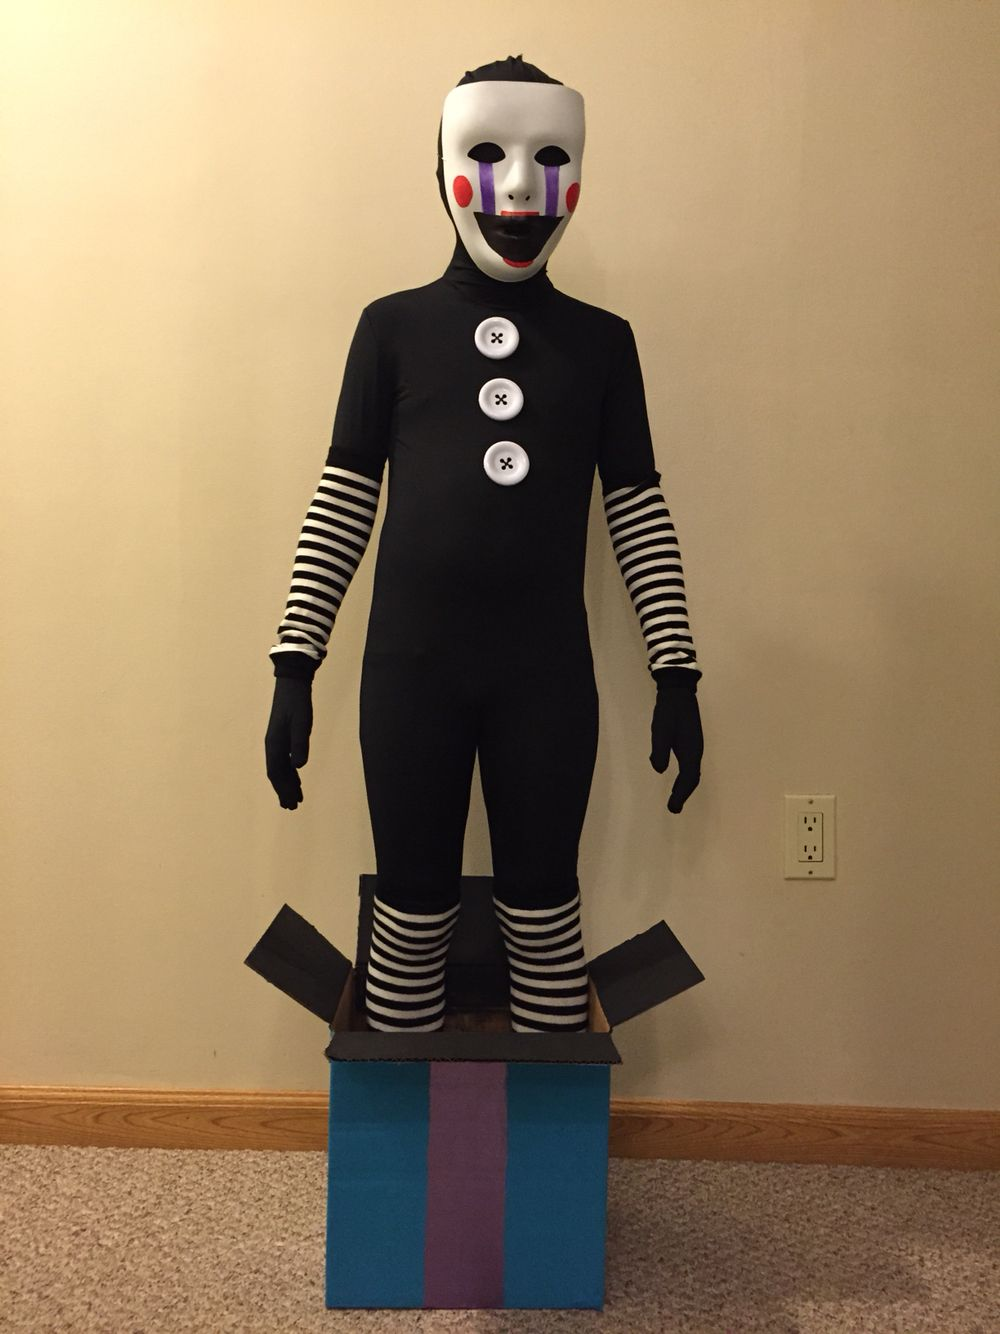 marionette five nights at freddy's full body - Google Search ...